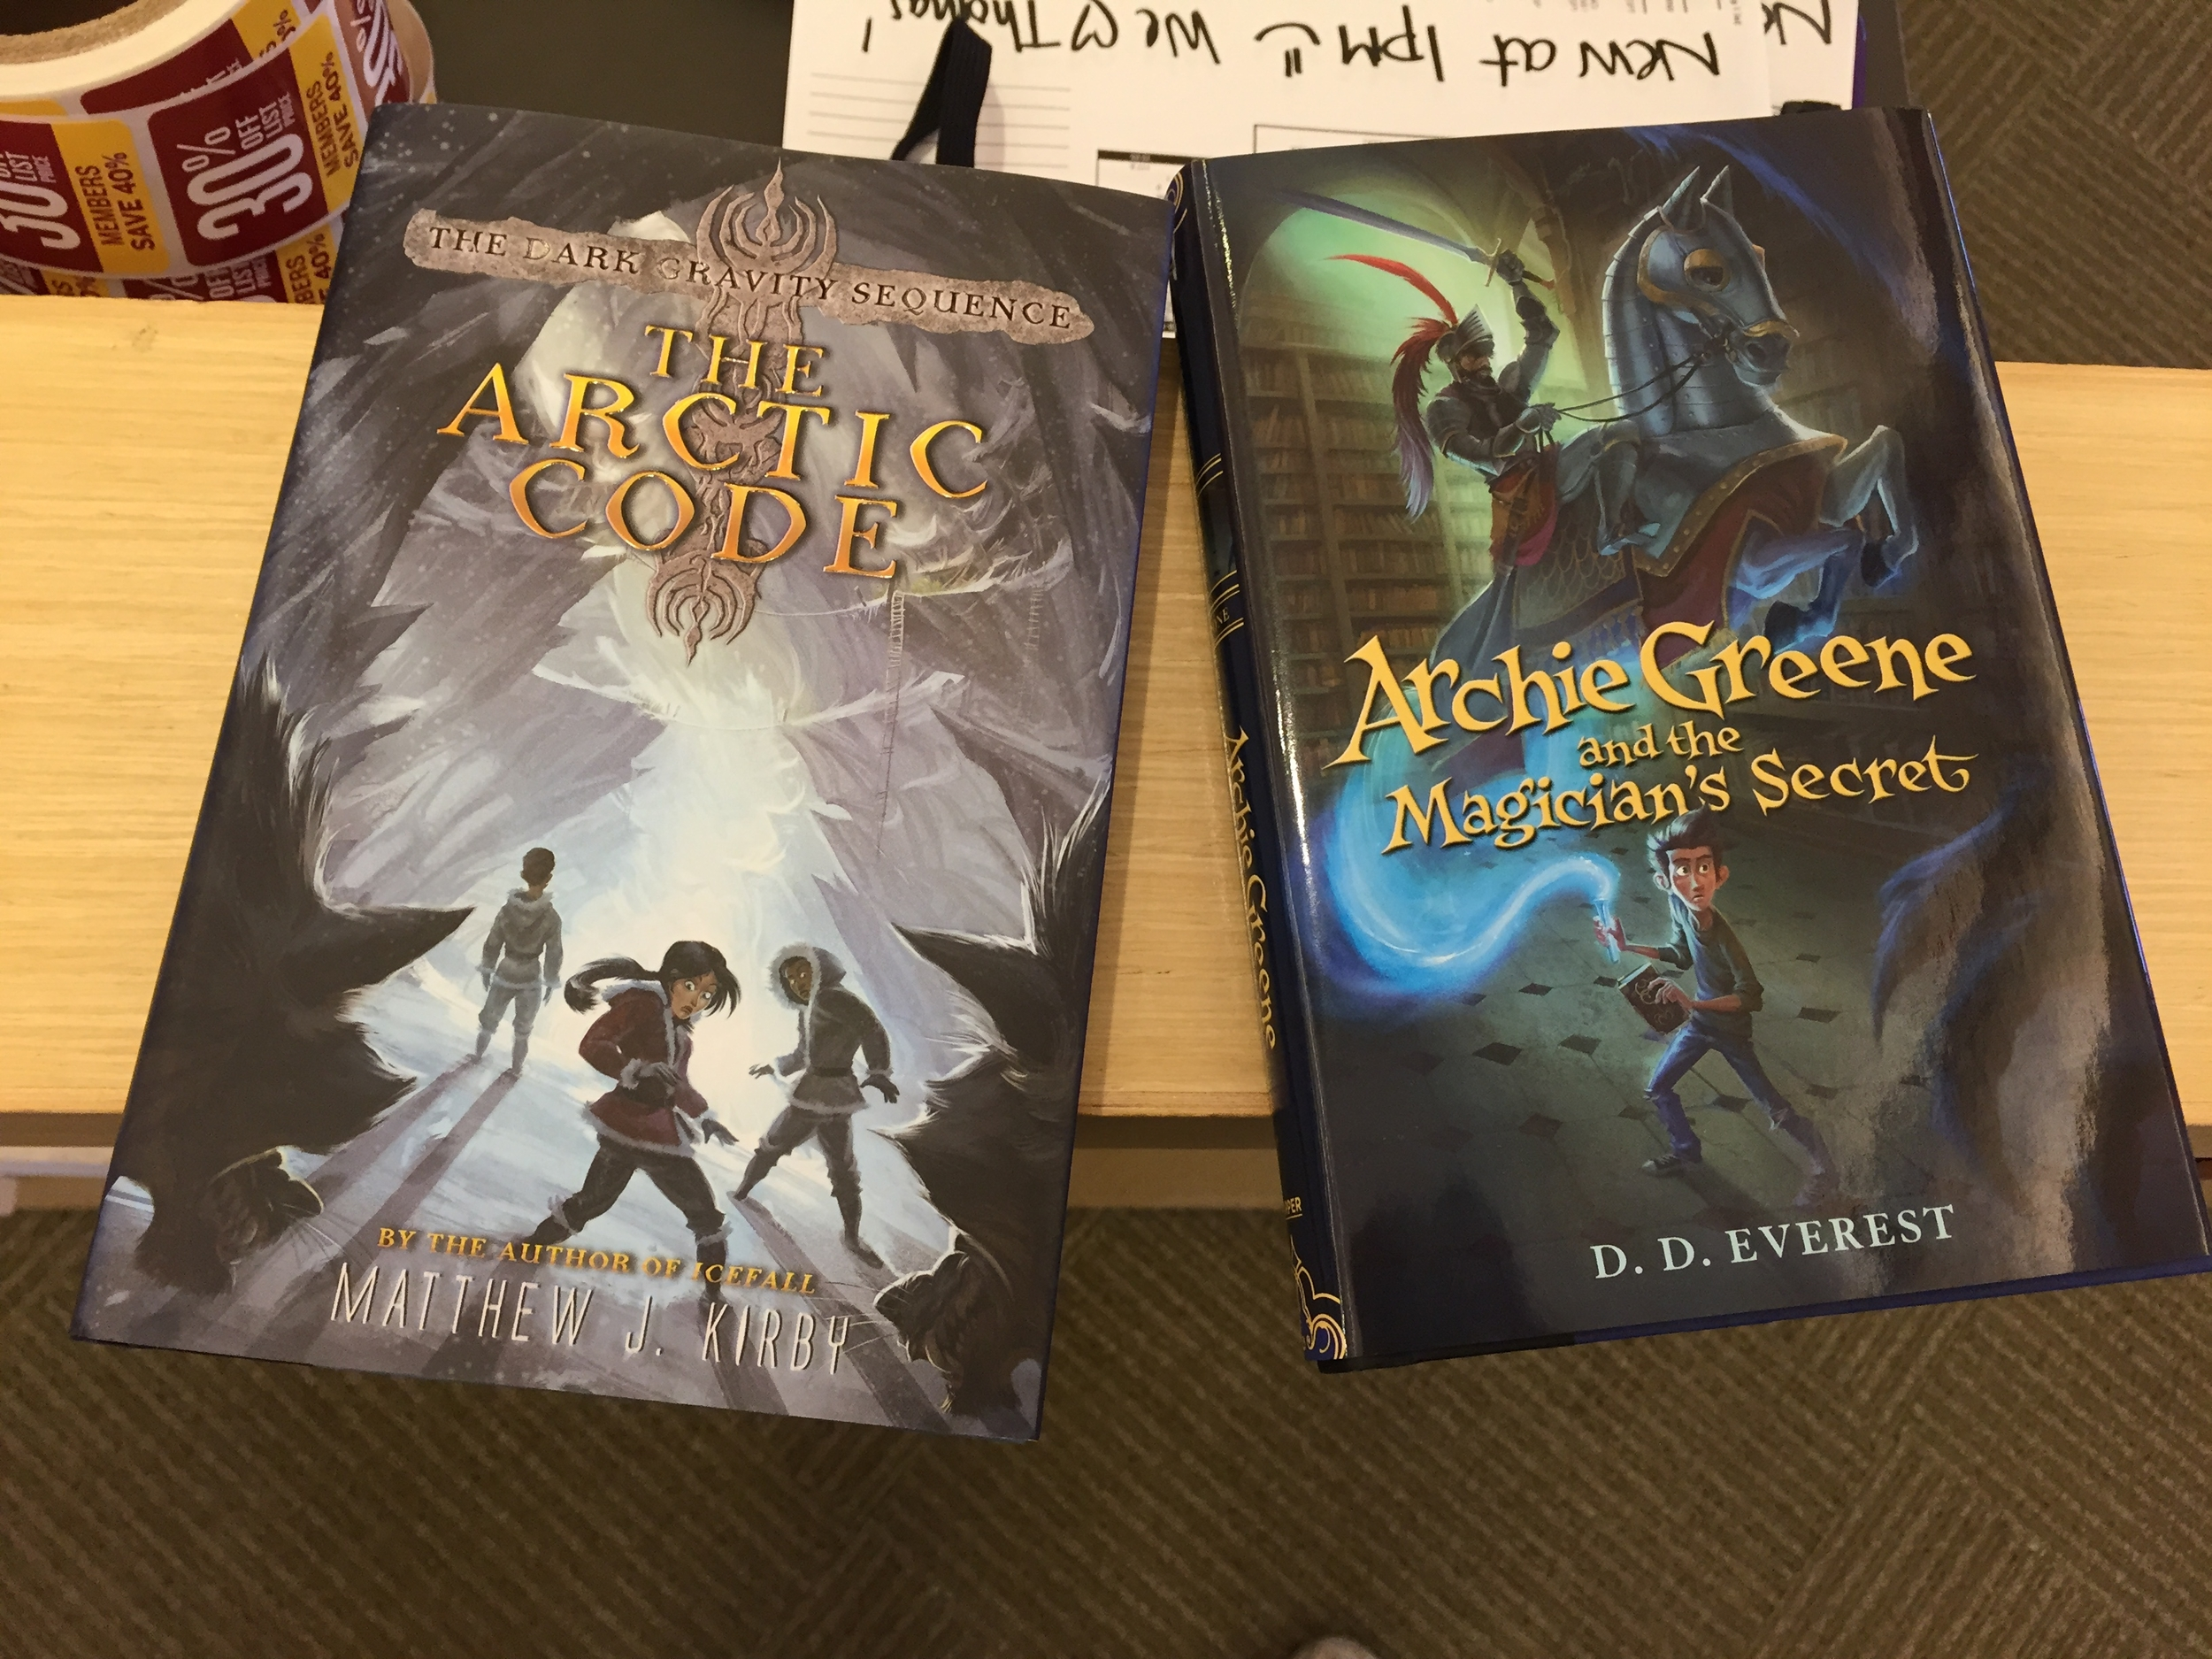 Arctic Code and Archie Greene book covers on the shelves!